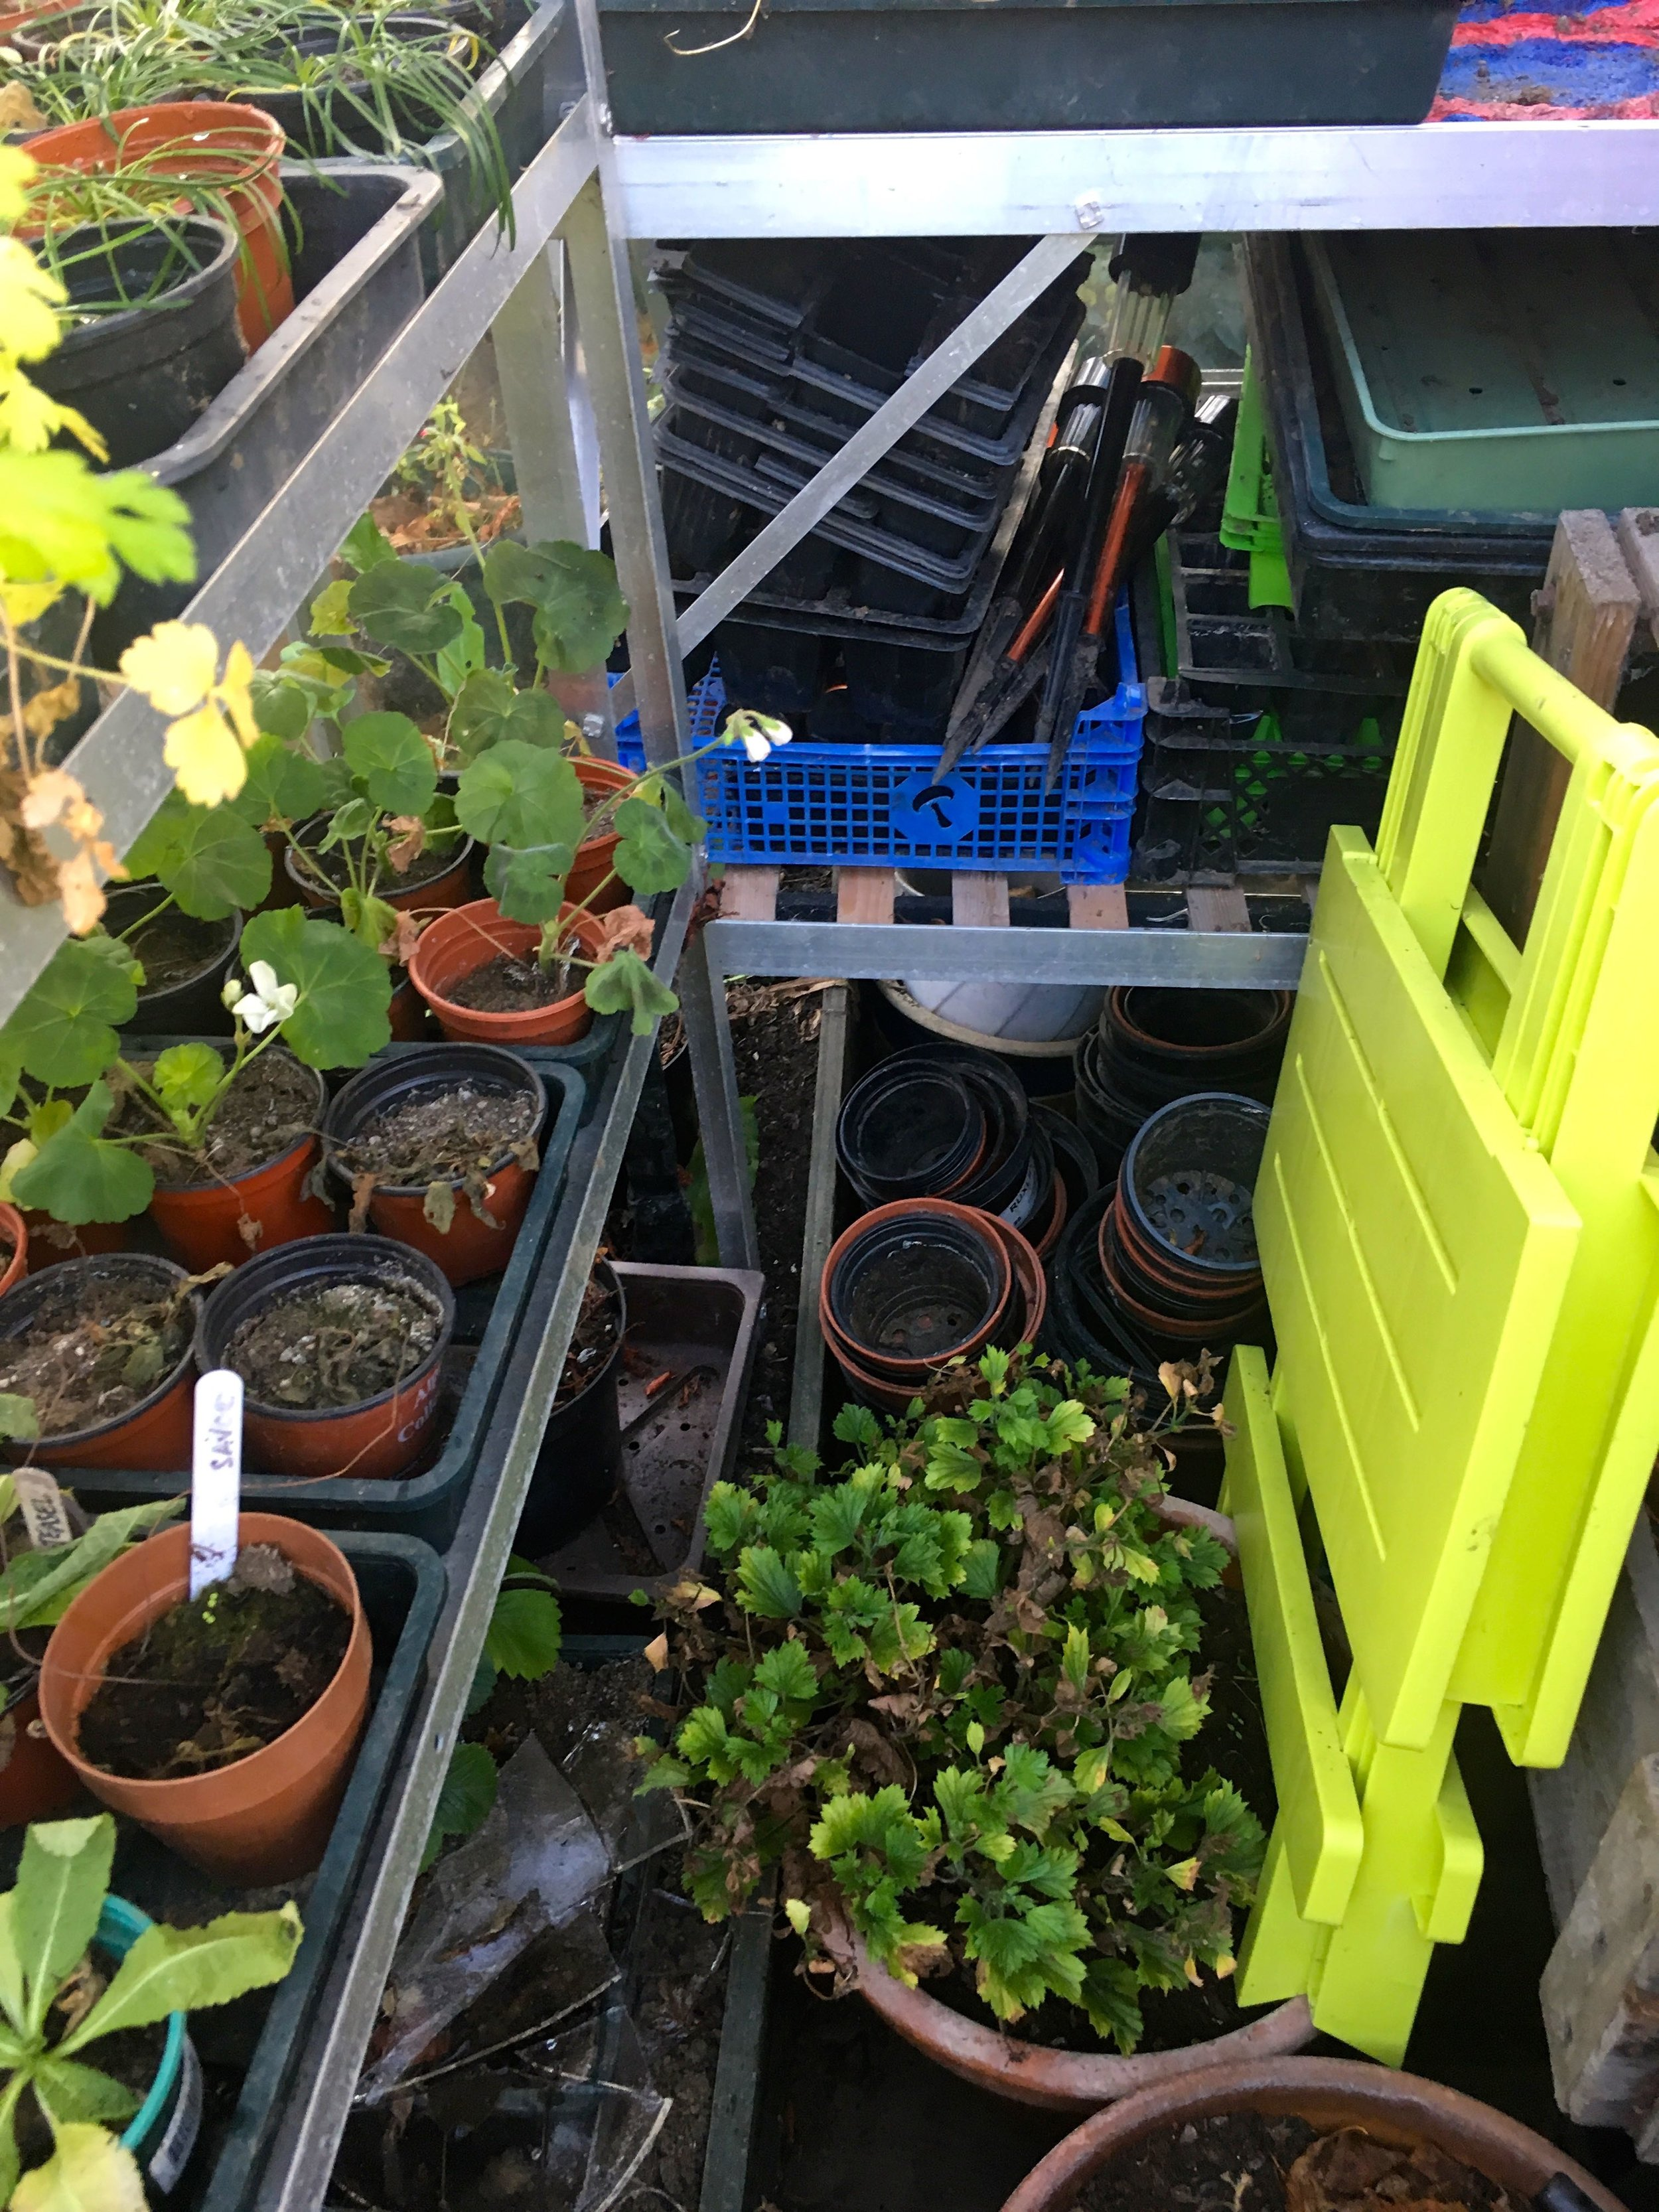 And the greenhouse floor is pretty full too